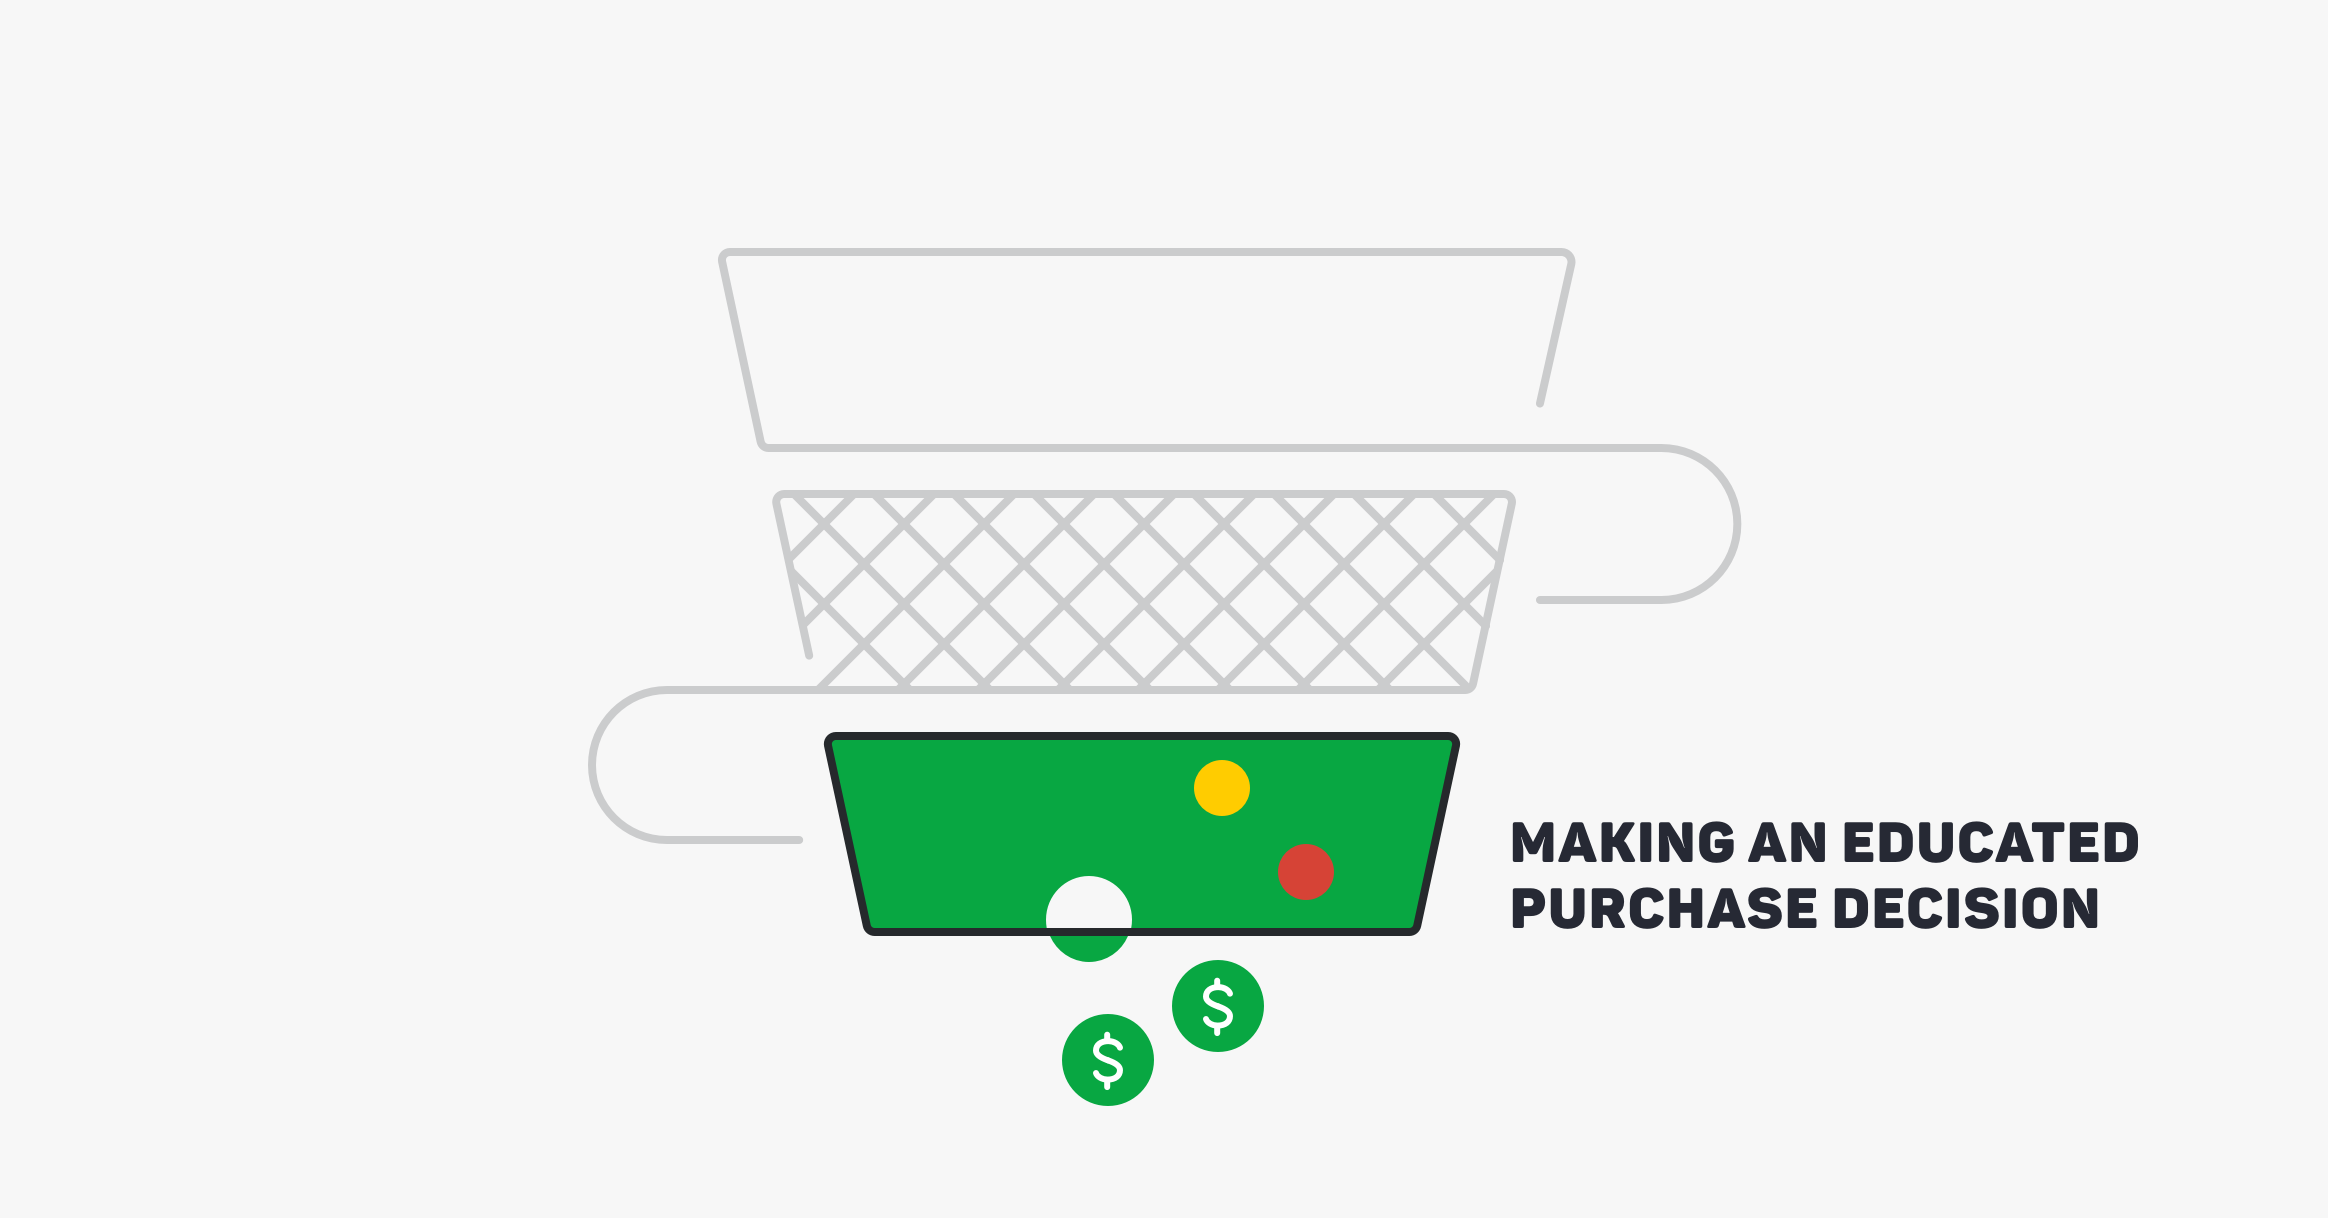 Bottom of Sales Funnel: Making an Educated Purchase Decision